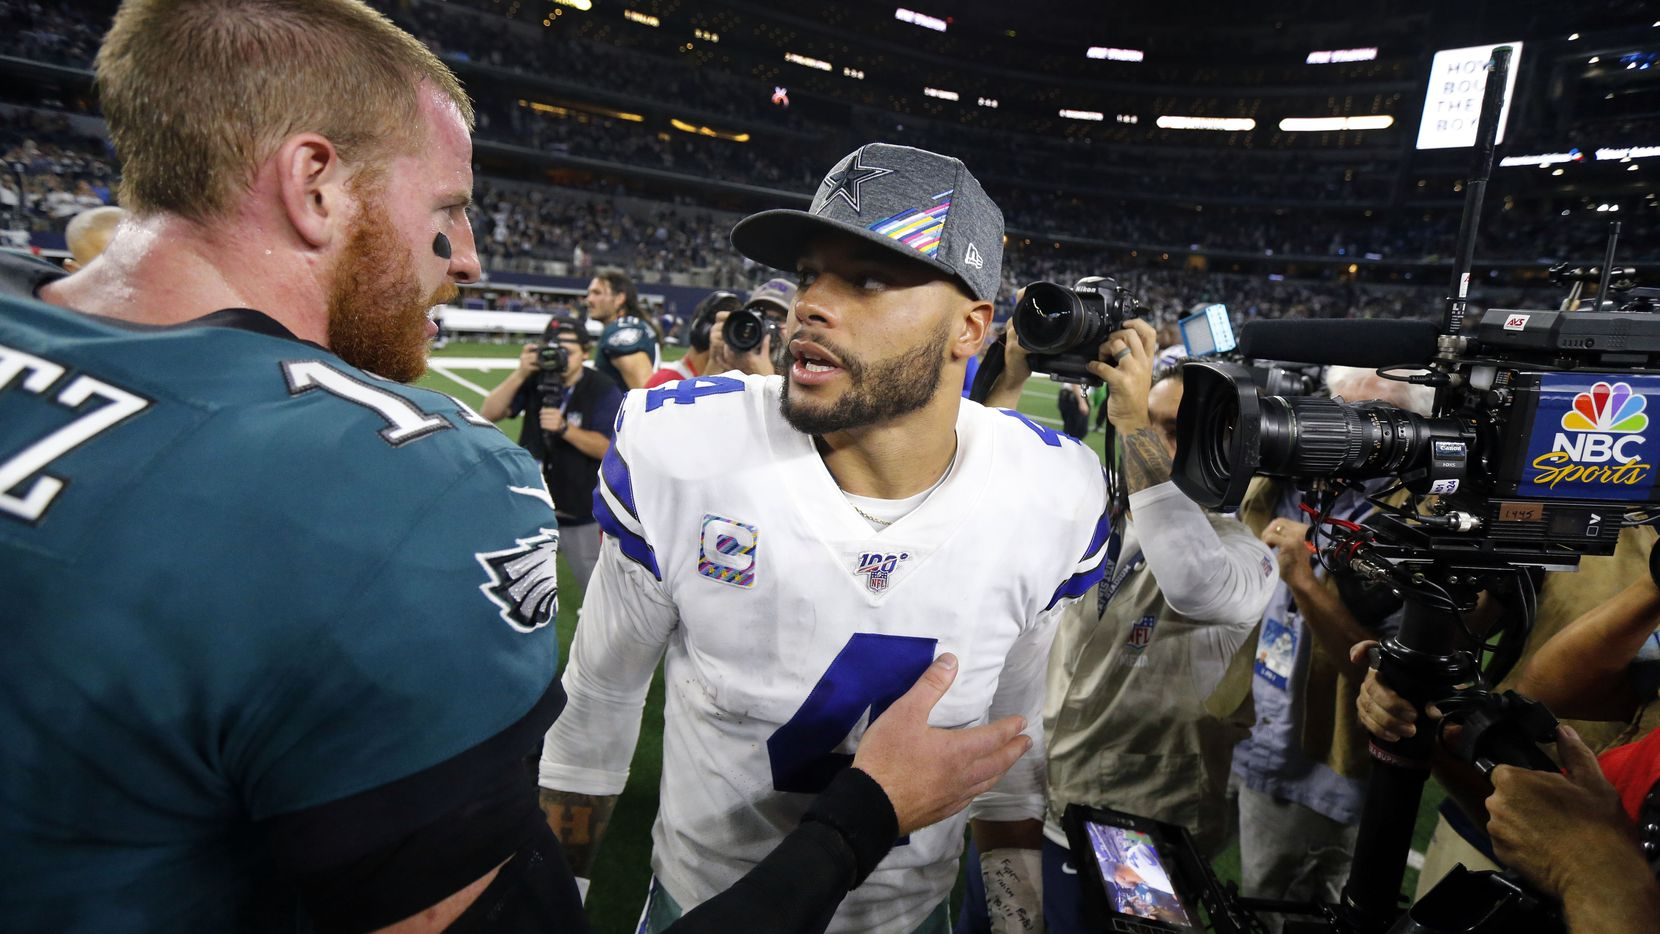 Philadelphia Eagles quarterback Carson Wentz (11) stops and congratulates Dallas Cowboys quarterback Dak Prescott (4) on their 37-10 win at AT&T Stadium in Arlington, Texas, Sunday, October 20, 2019. The Cowboys won, 37-10.